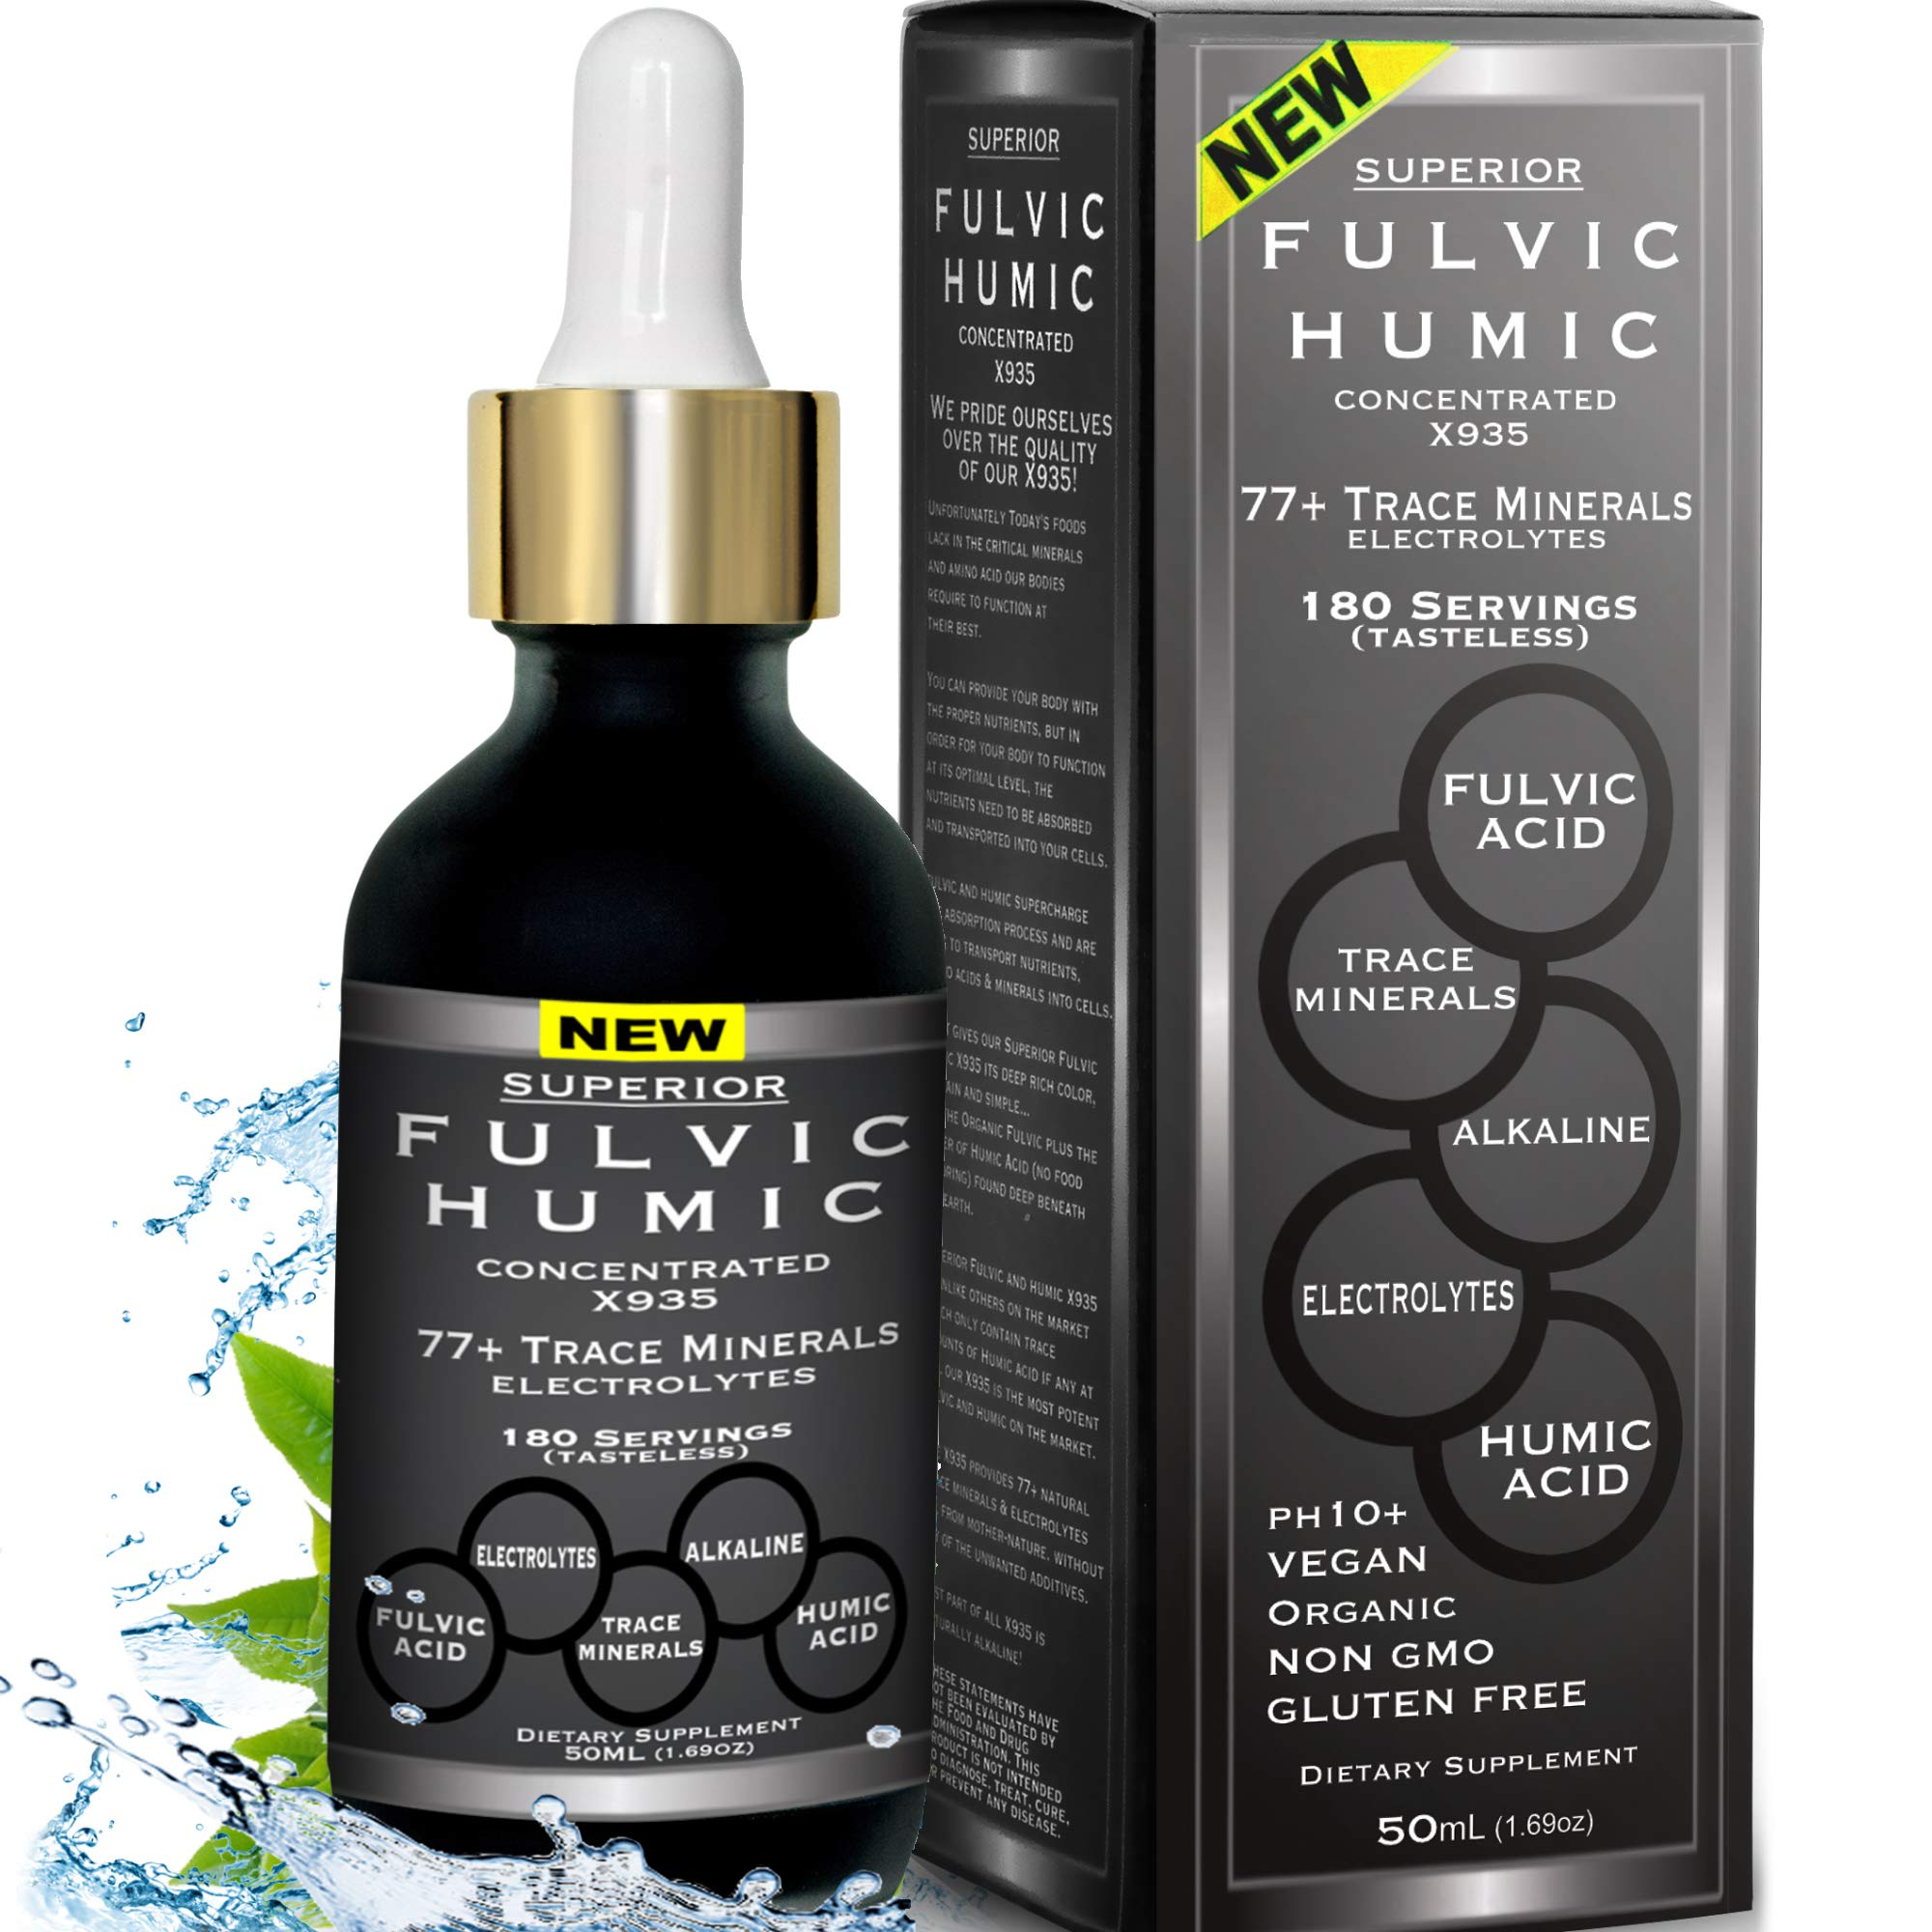 Fulvic Acid and Humic Acid Trace Mineral Drops 6 Month Supply, Electrolyte Energy Boost. All Natural Organic Plant Derived Blend of Ionic Trace Minerals from Fulvic and Humic Acid Similar to Shilajit by Superior Fulvic Humic Concentrated X935